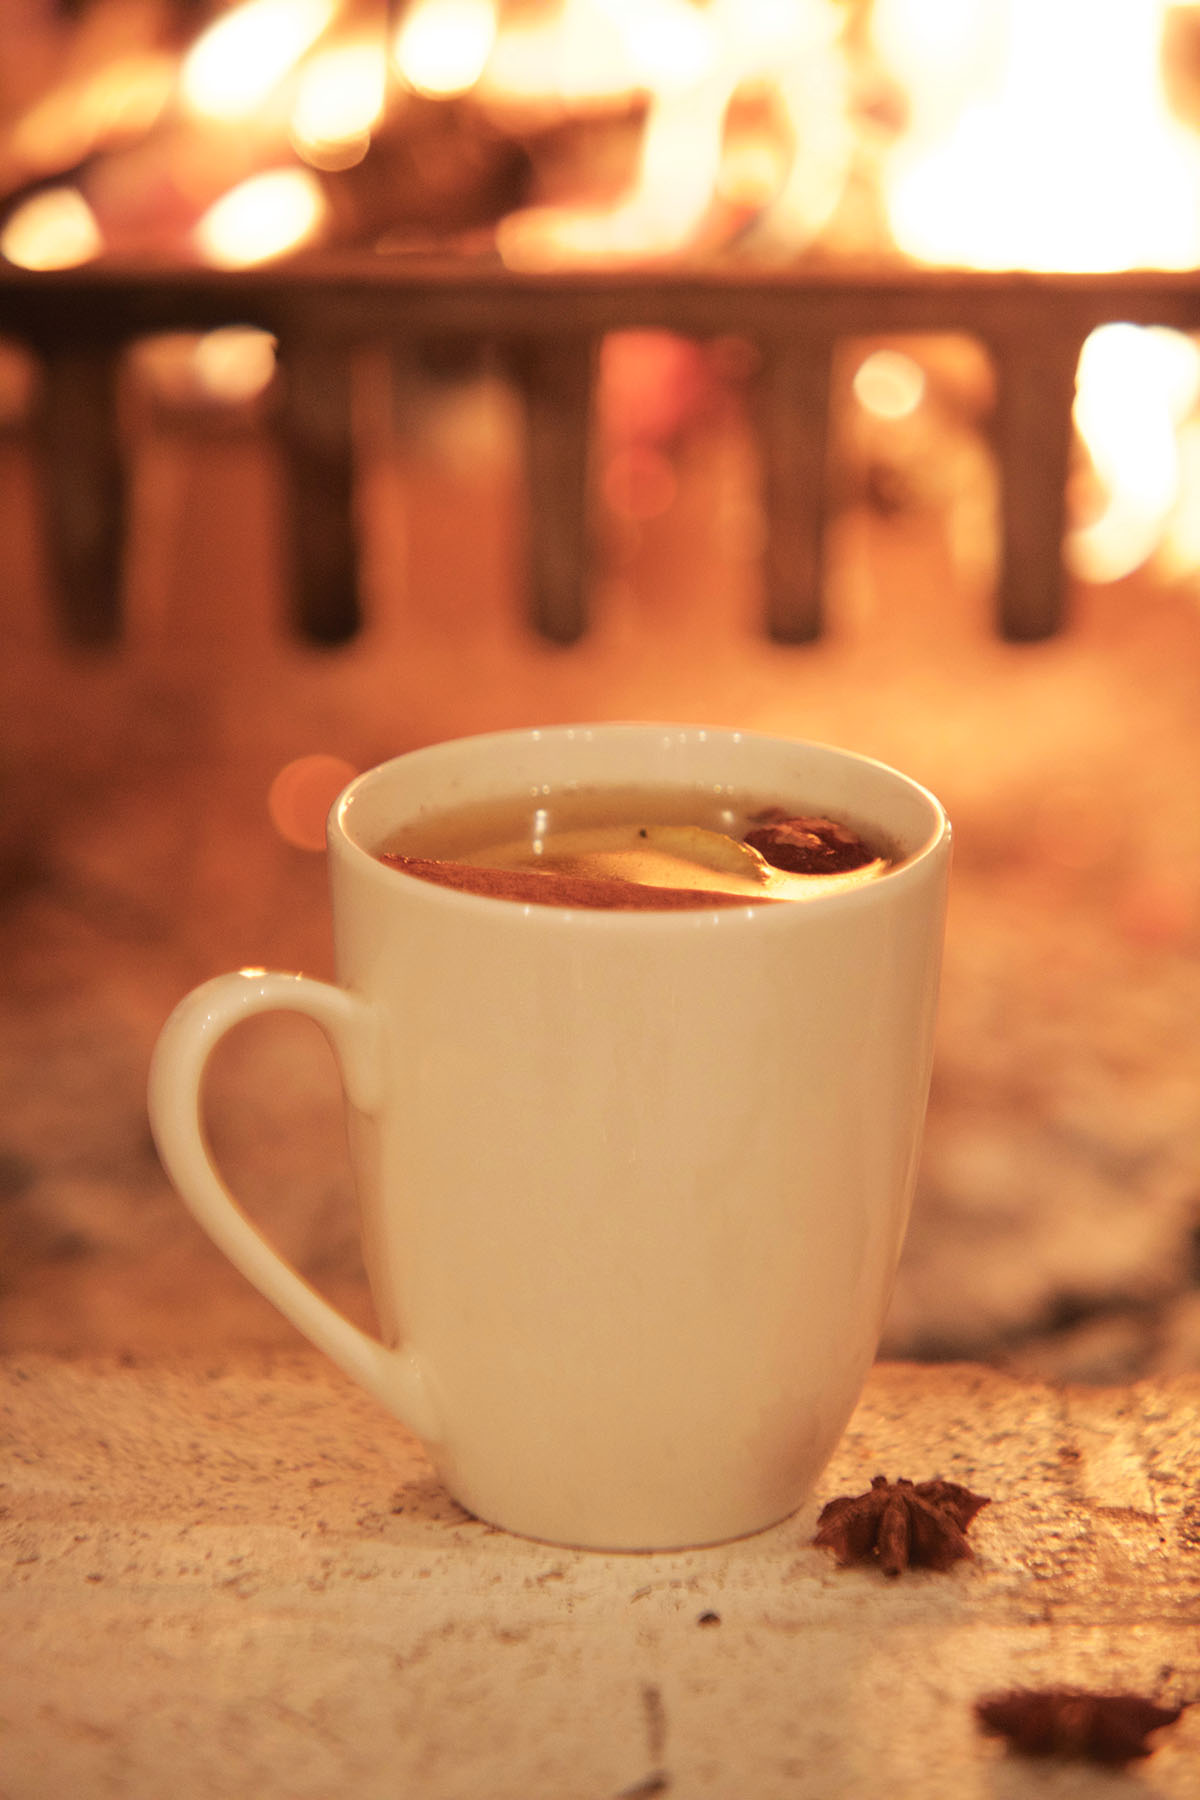 Tips For Staying Healthy This Cold And Flu Season | Herbal Academy | Have you thought about what you will do to support your body's health this winter? Here are some tips for staying healthy this cold and flu season!